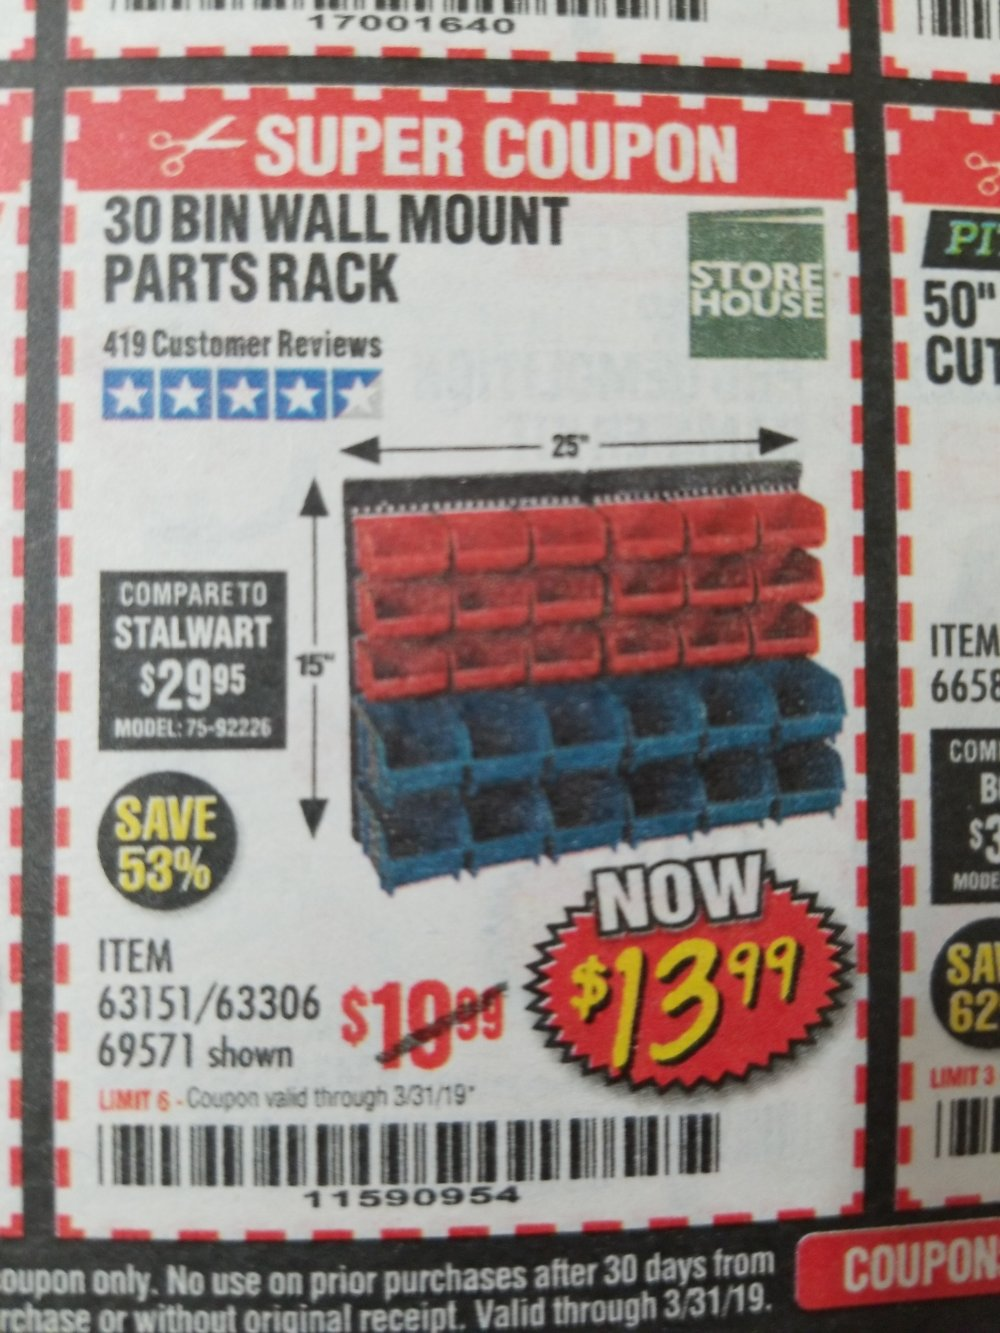 Harbor Freight Coupon, HF Coupons - 30 Bin Wall Mount Parts Rack